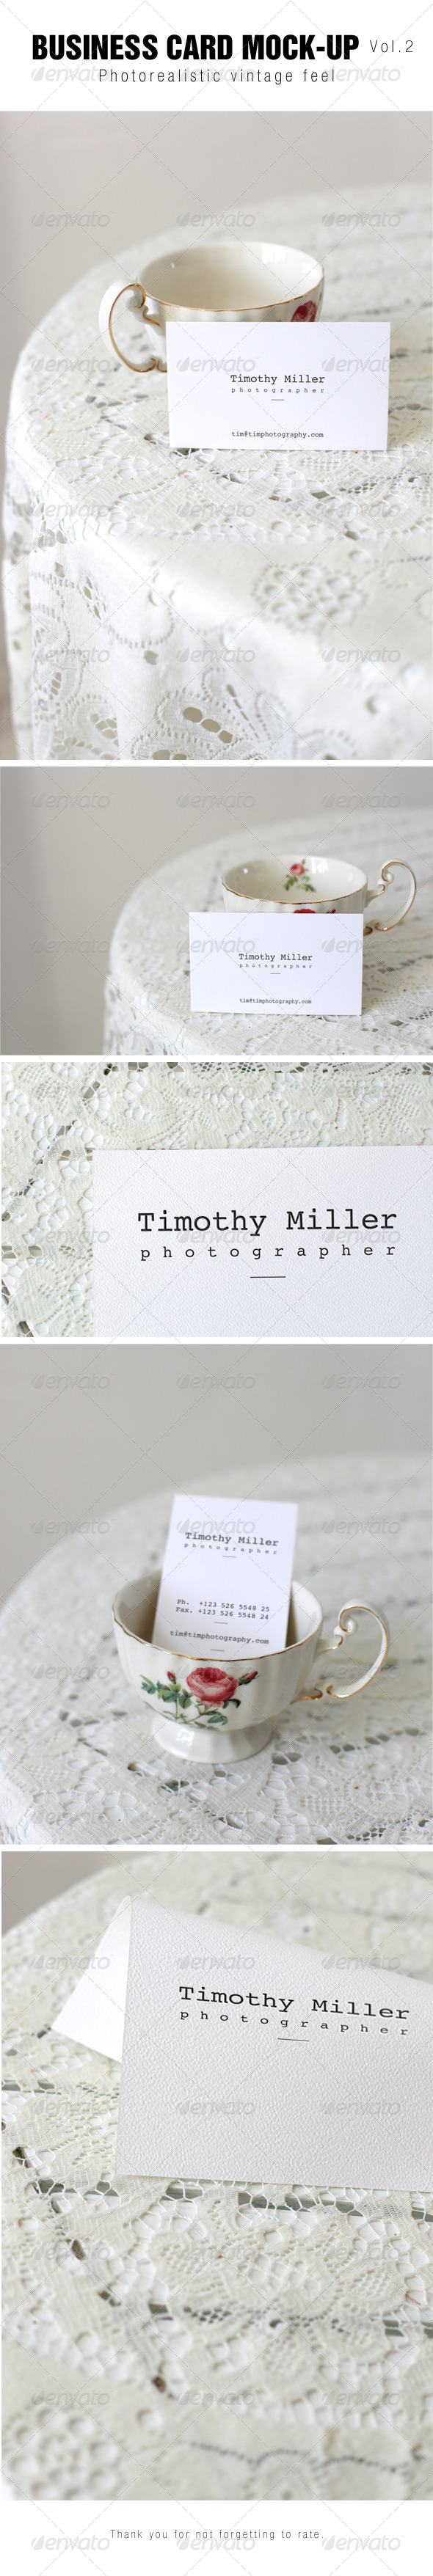 GraphicRiver Business Card Mock-up Vol.2 6809604